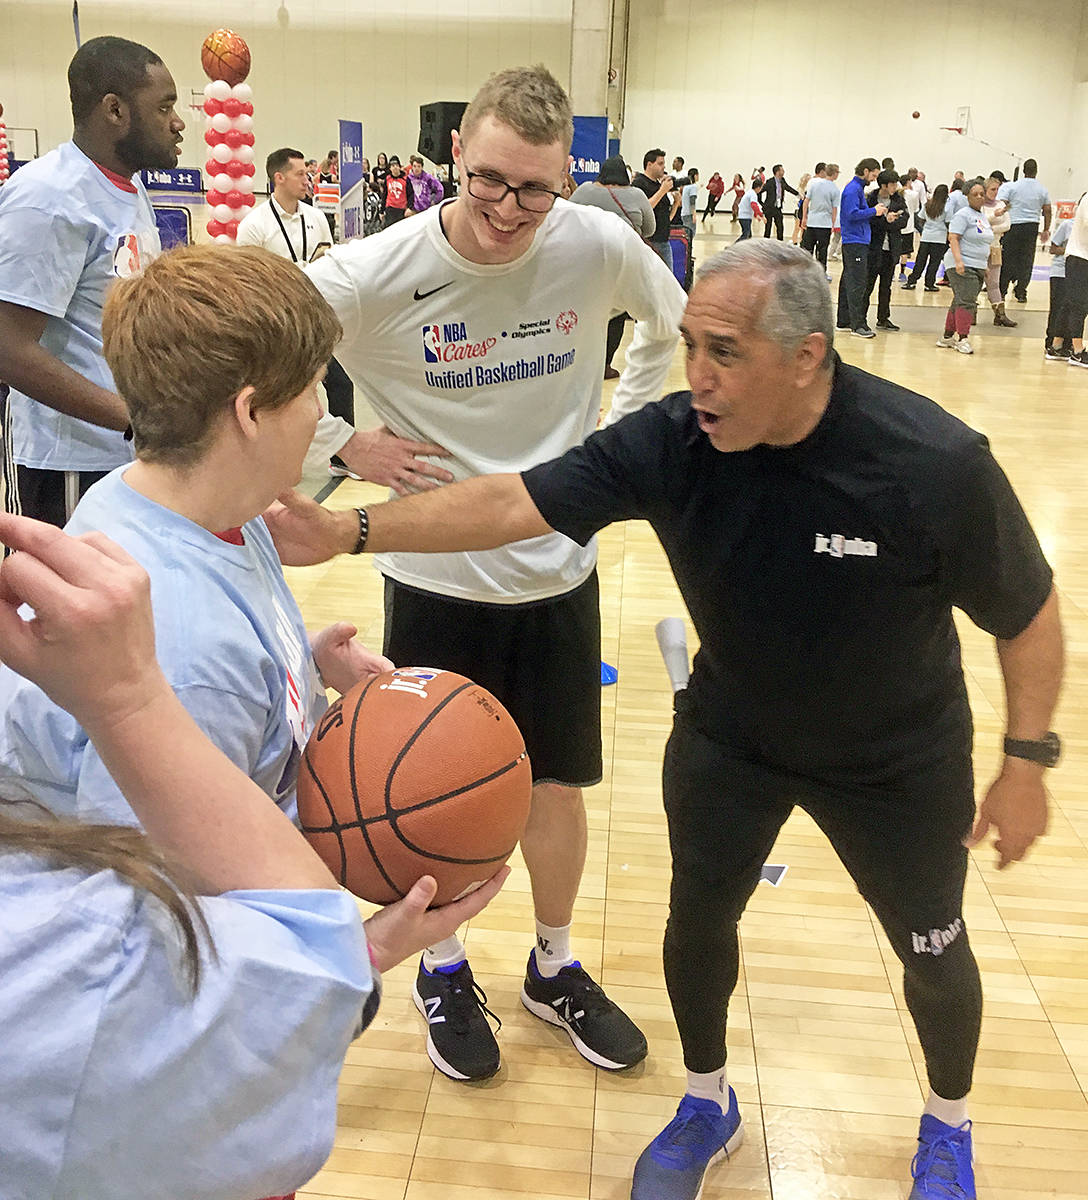 Sean Annan (centre) taught basketball to people with severe disabilities at the NBA Cares Special Olympics Unified Sports Basketball Game (Matthew Annan/special to Langley Advance Times).